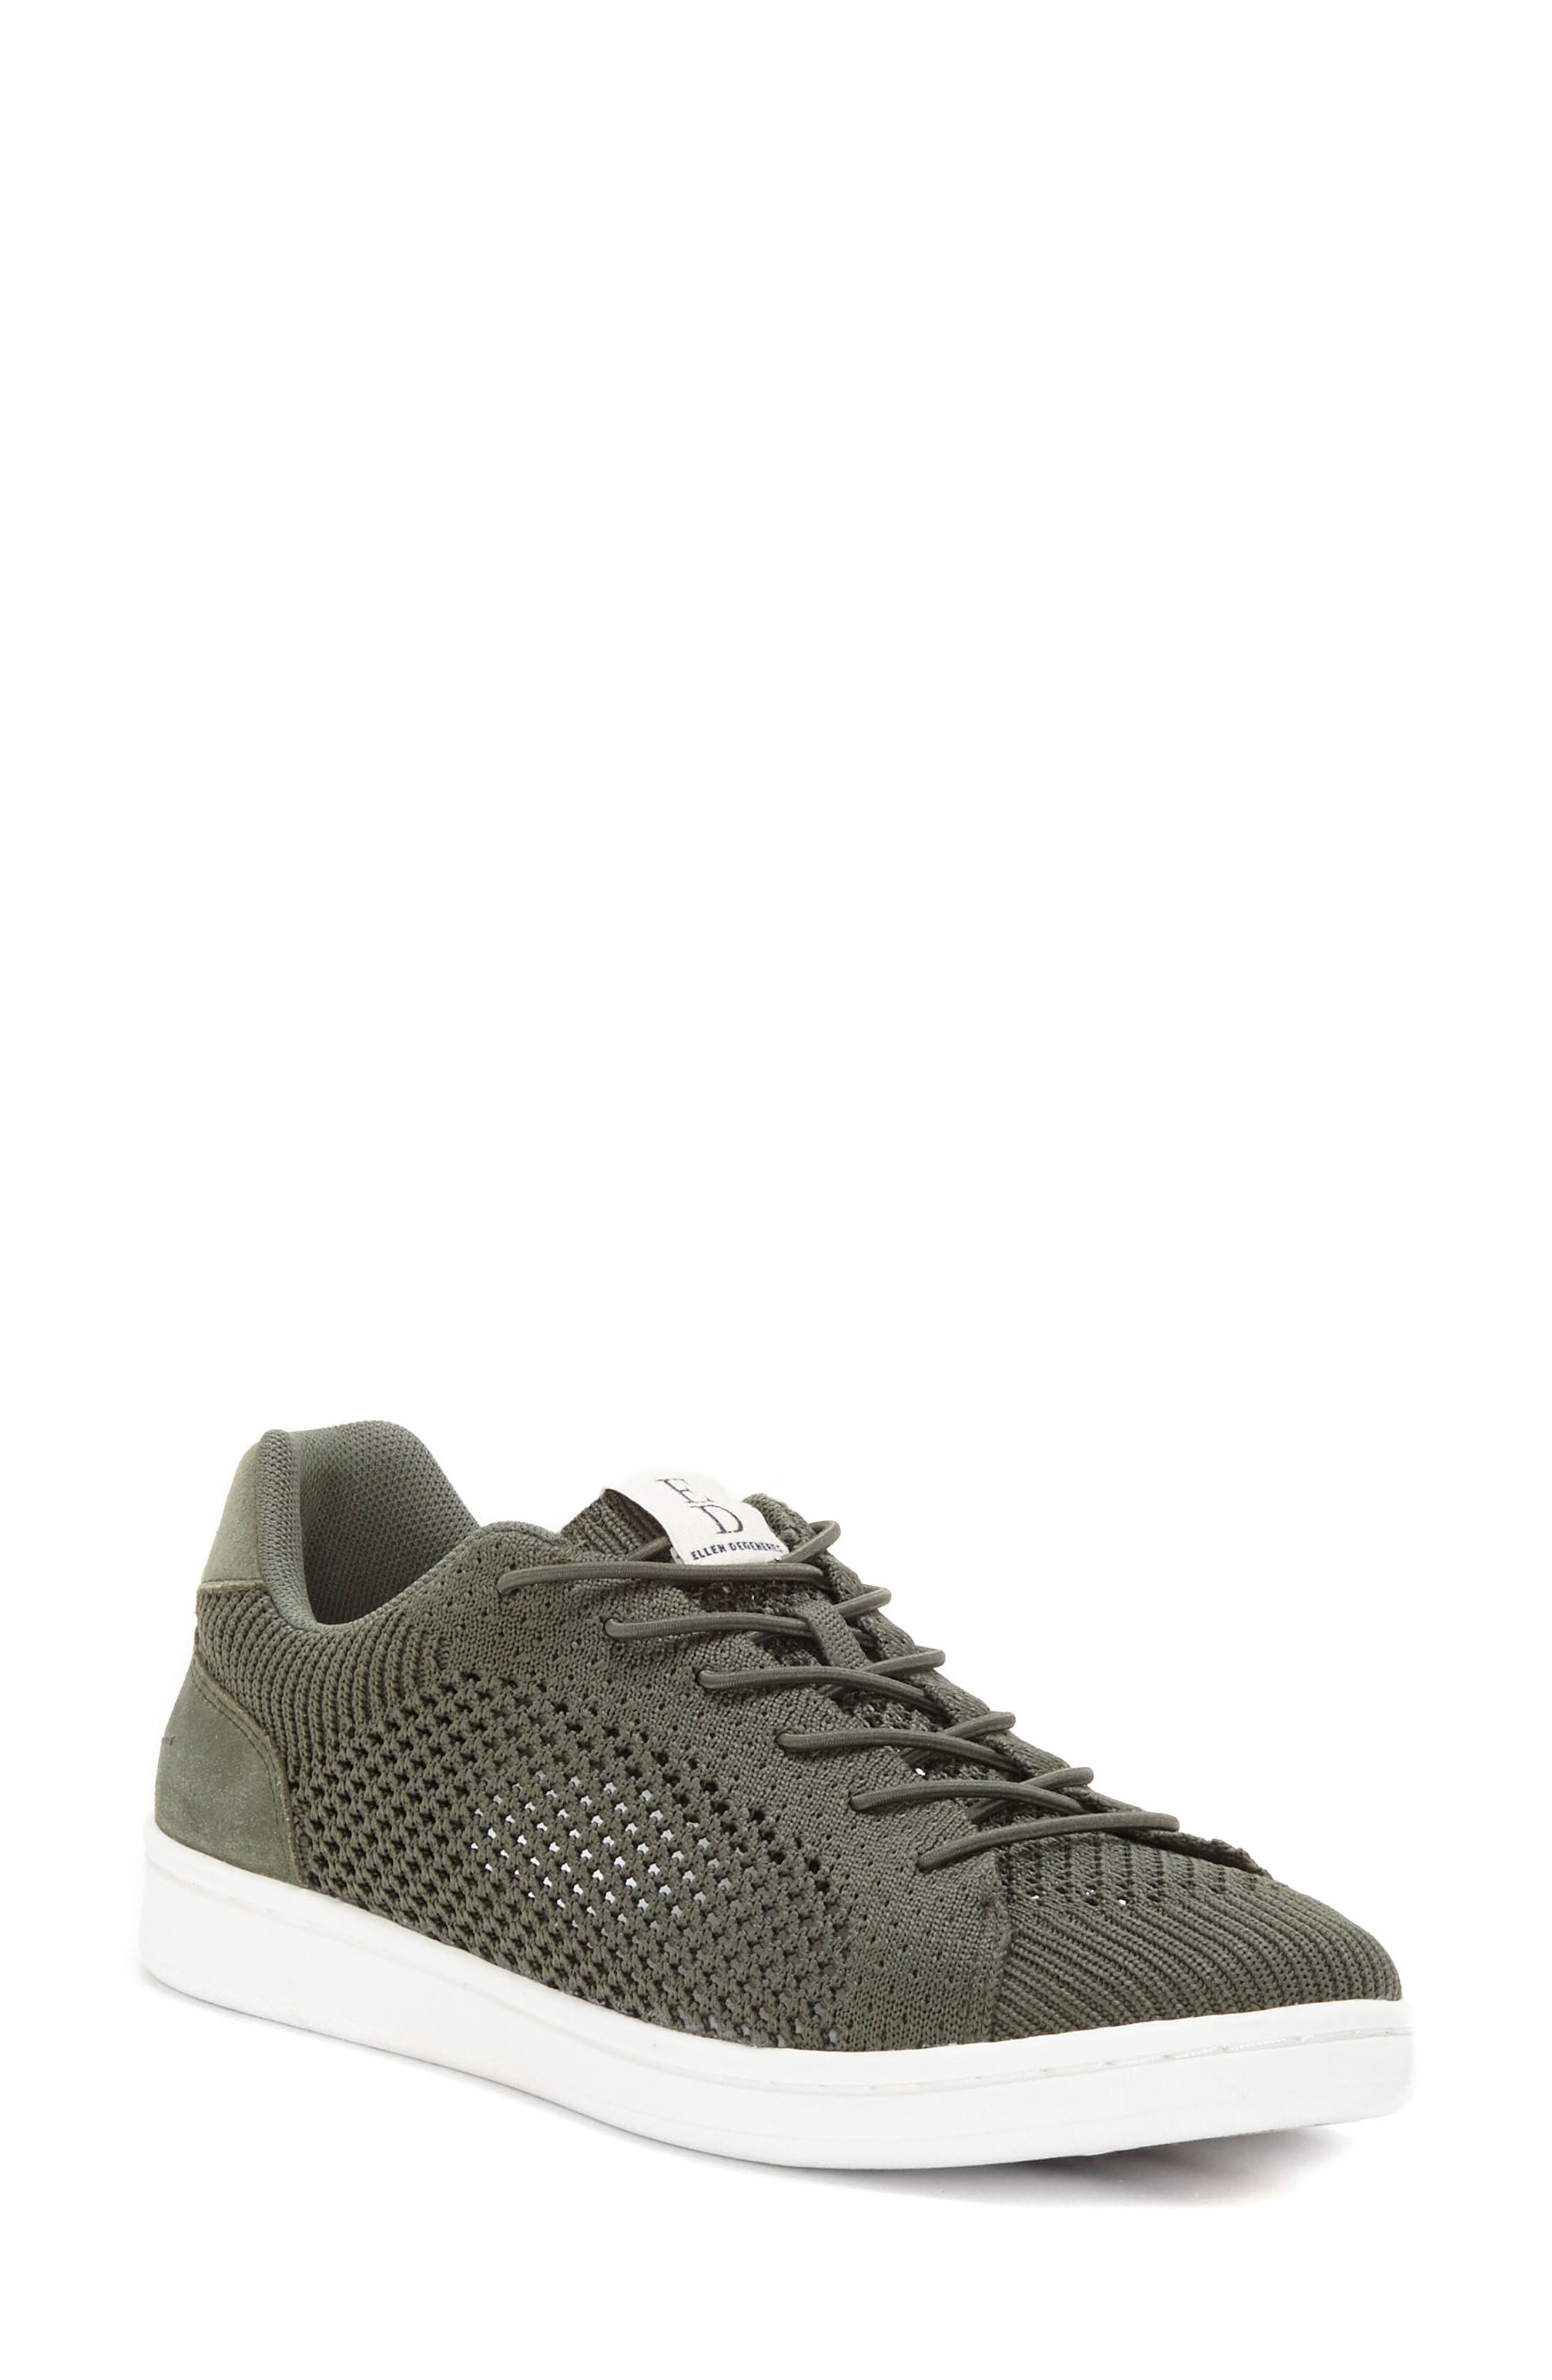 Casie Knit Sneaker,                             Main thumbnail 1, color,                             FOREST KNIT FABRIC